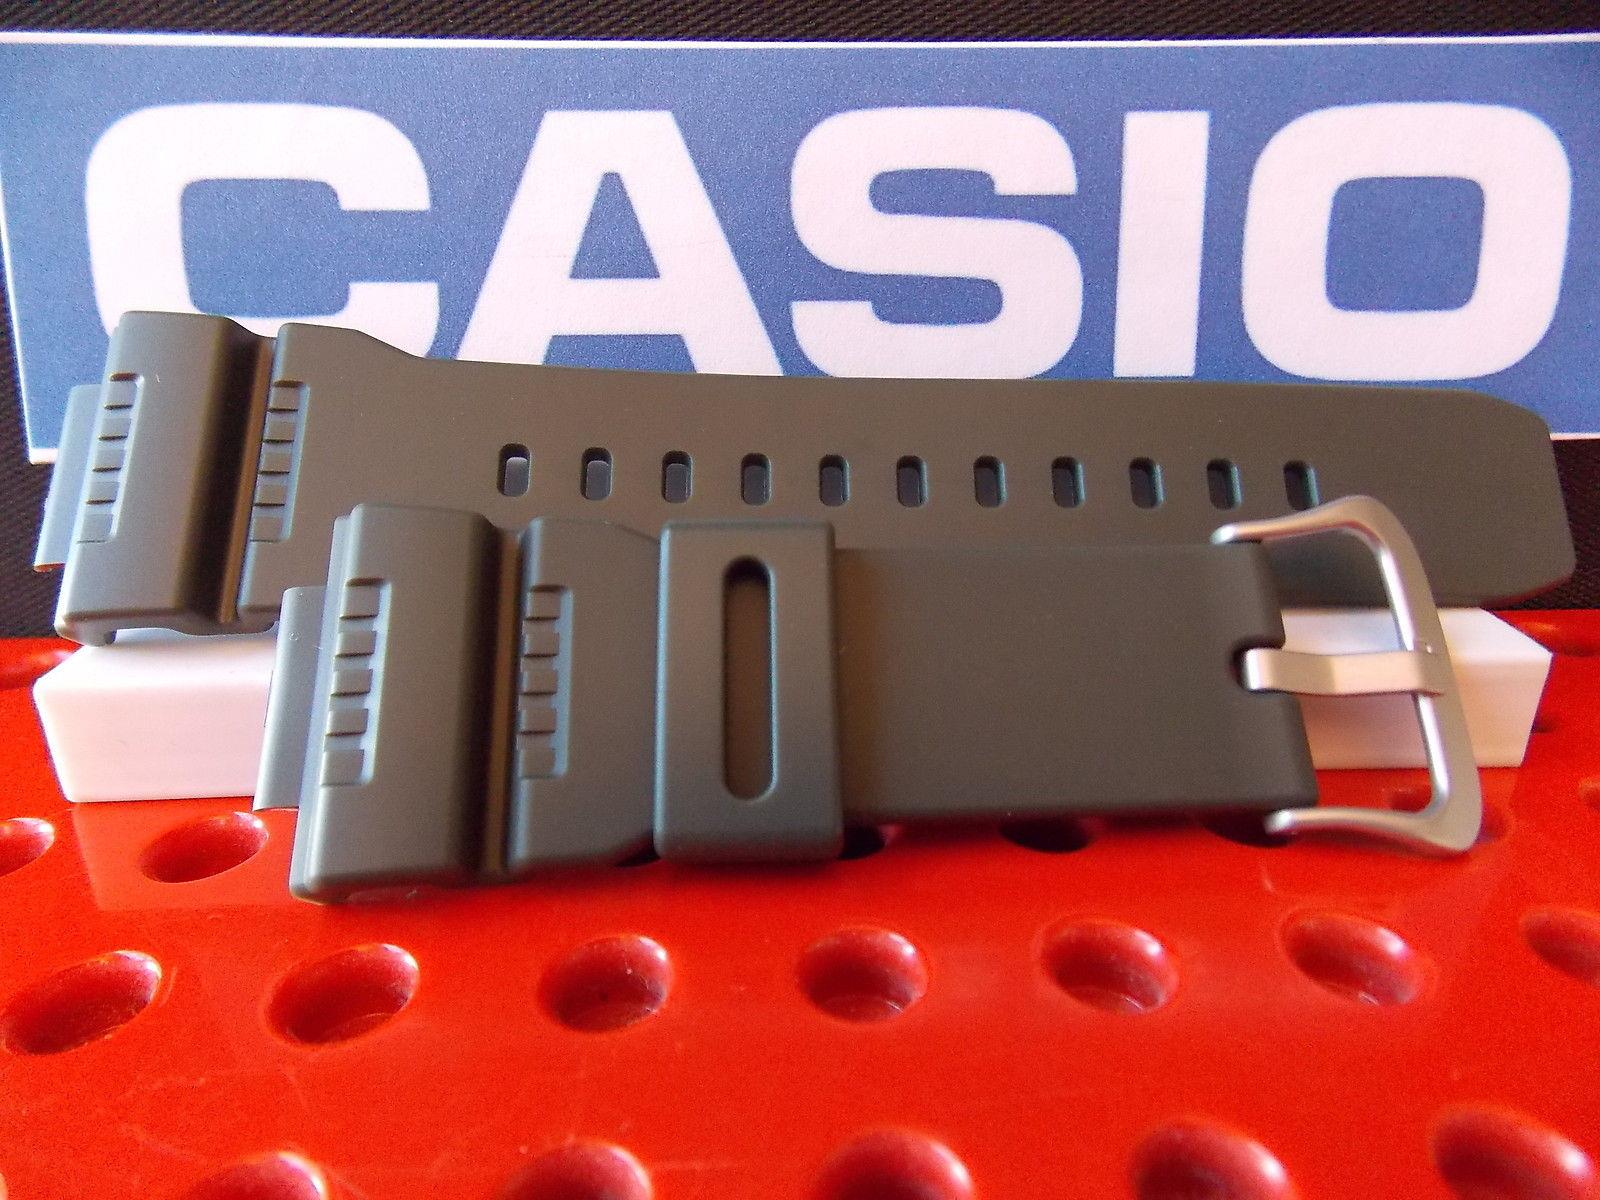 Casio Watch Band G-7900 -3, GR-7900, GW-7900 Green Rub G-Shock Strap Watchband